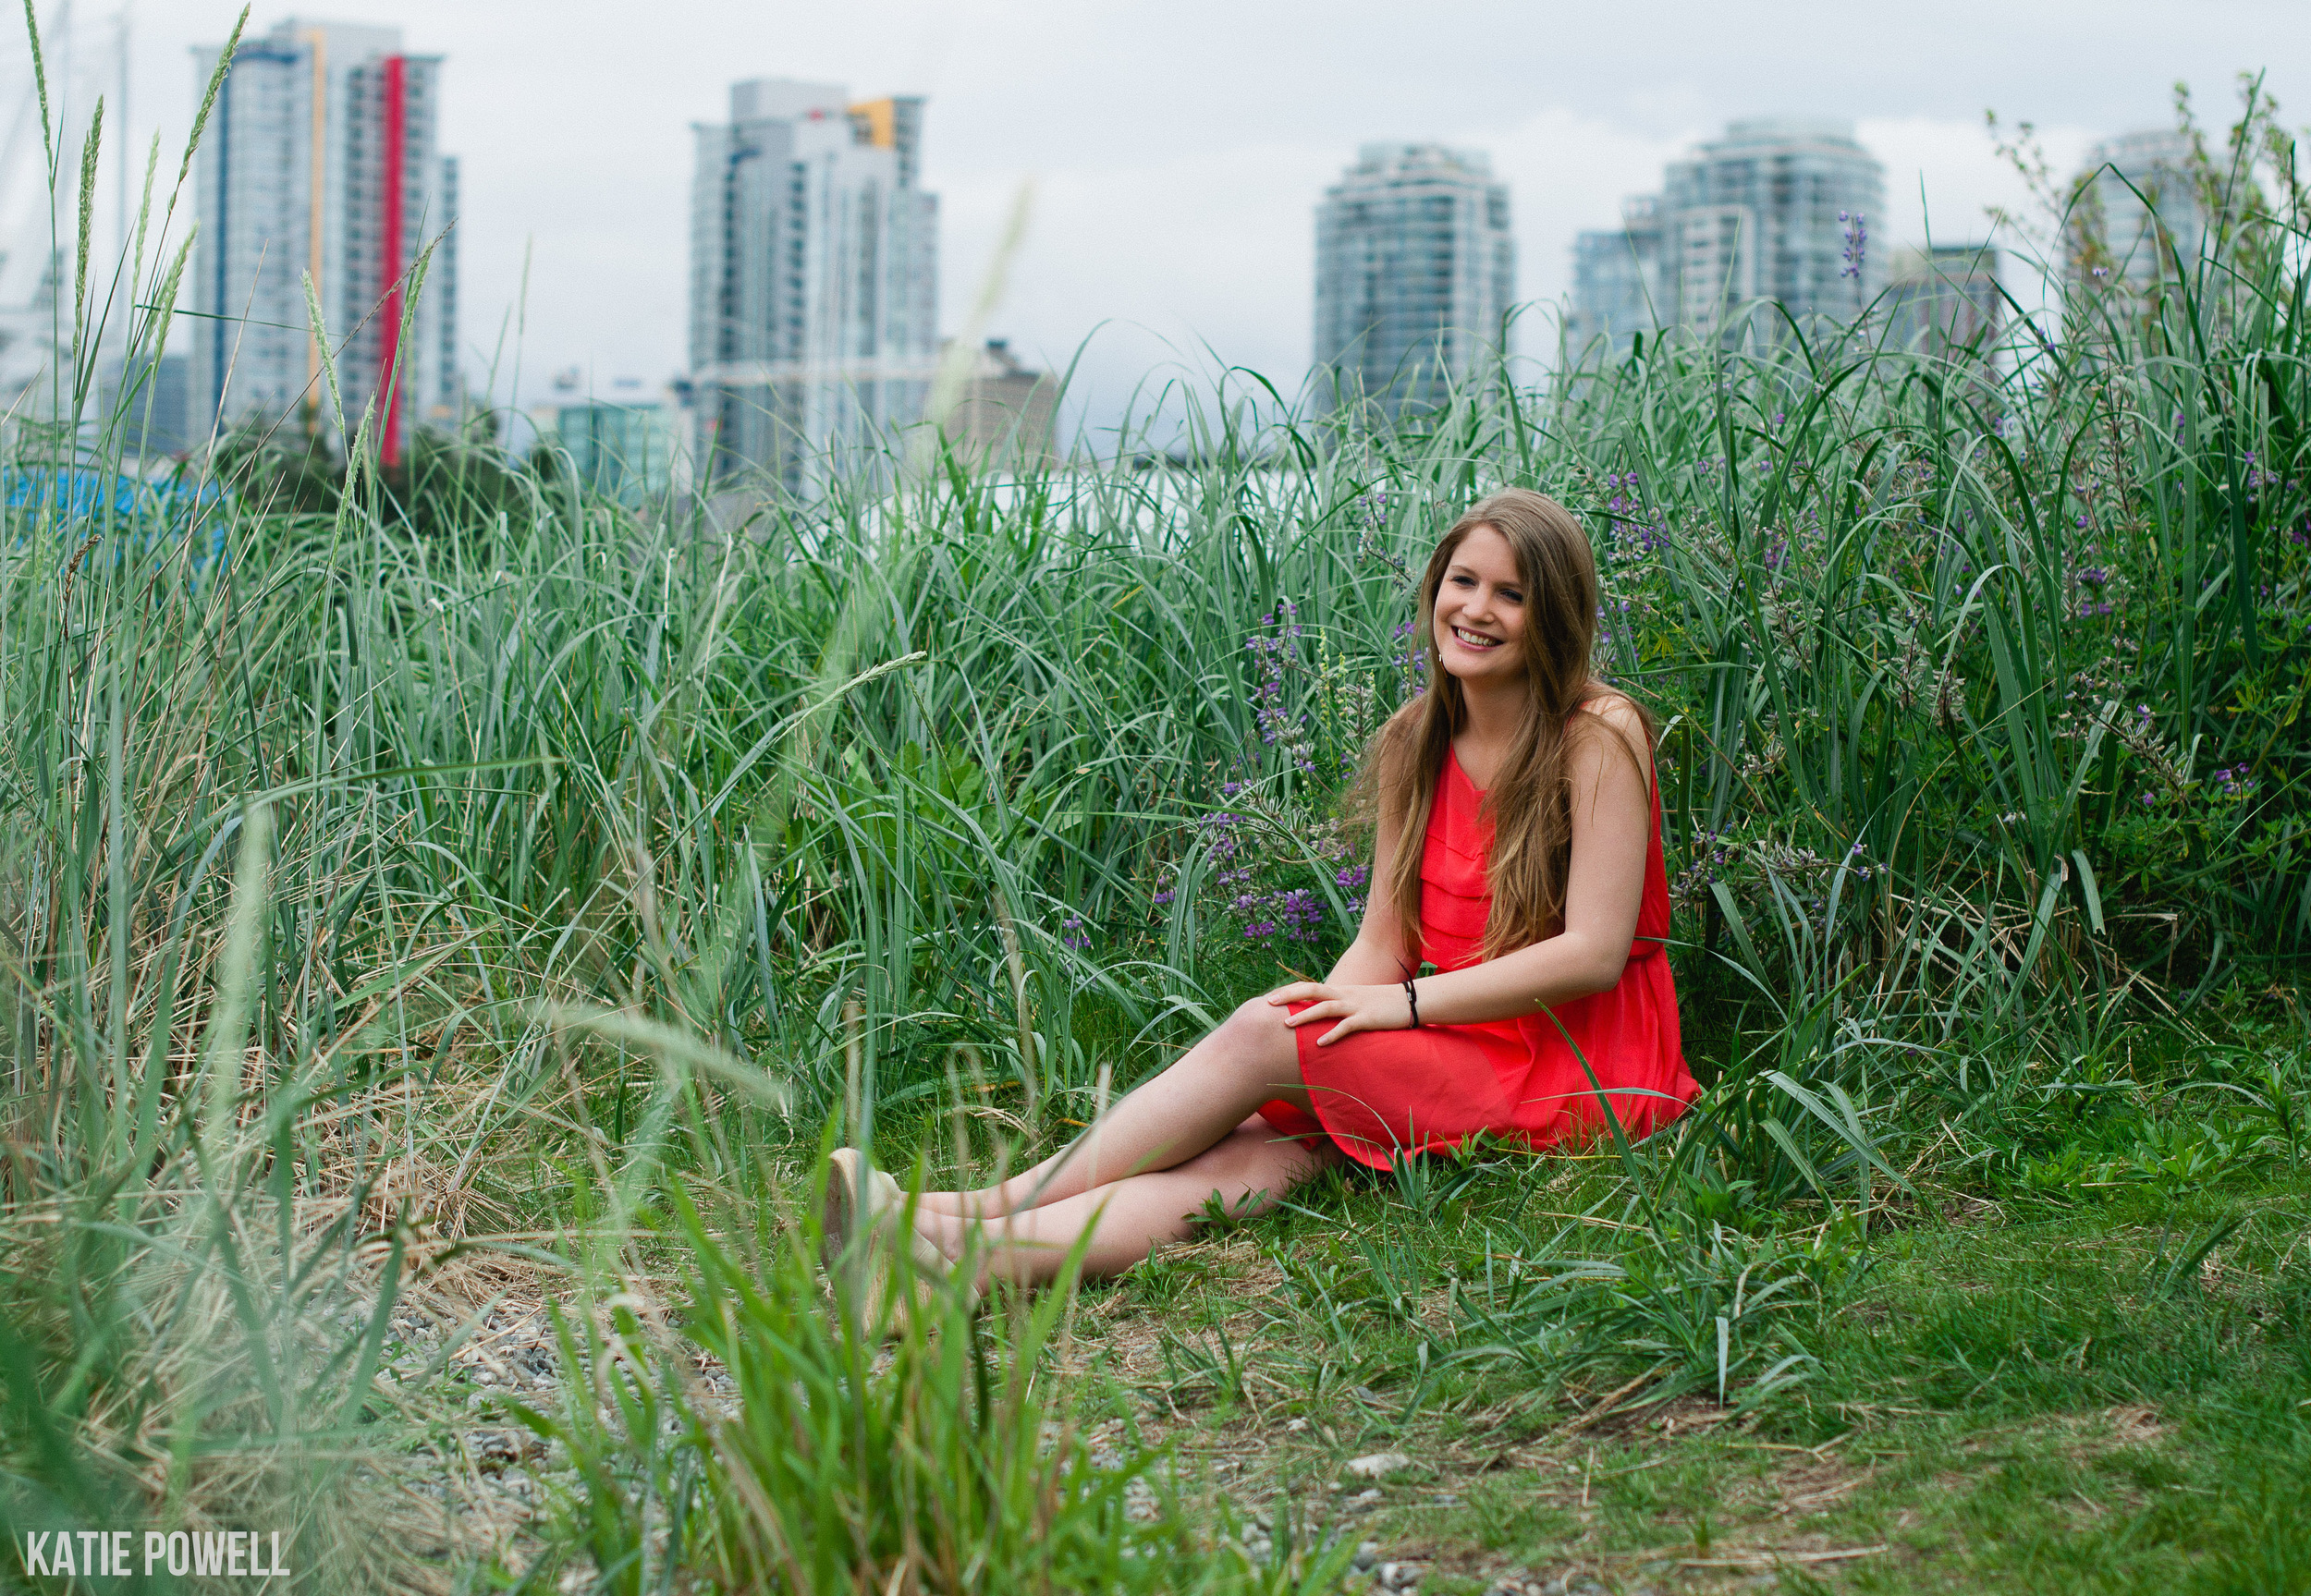 Alice_Olympic Village_Portraits_Vancouver_Katie Powell Photography-12.jpg